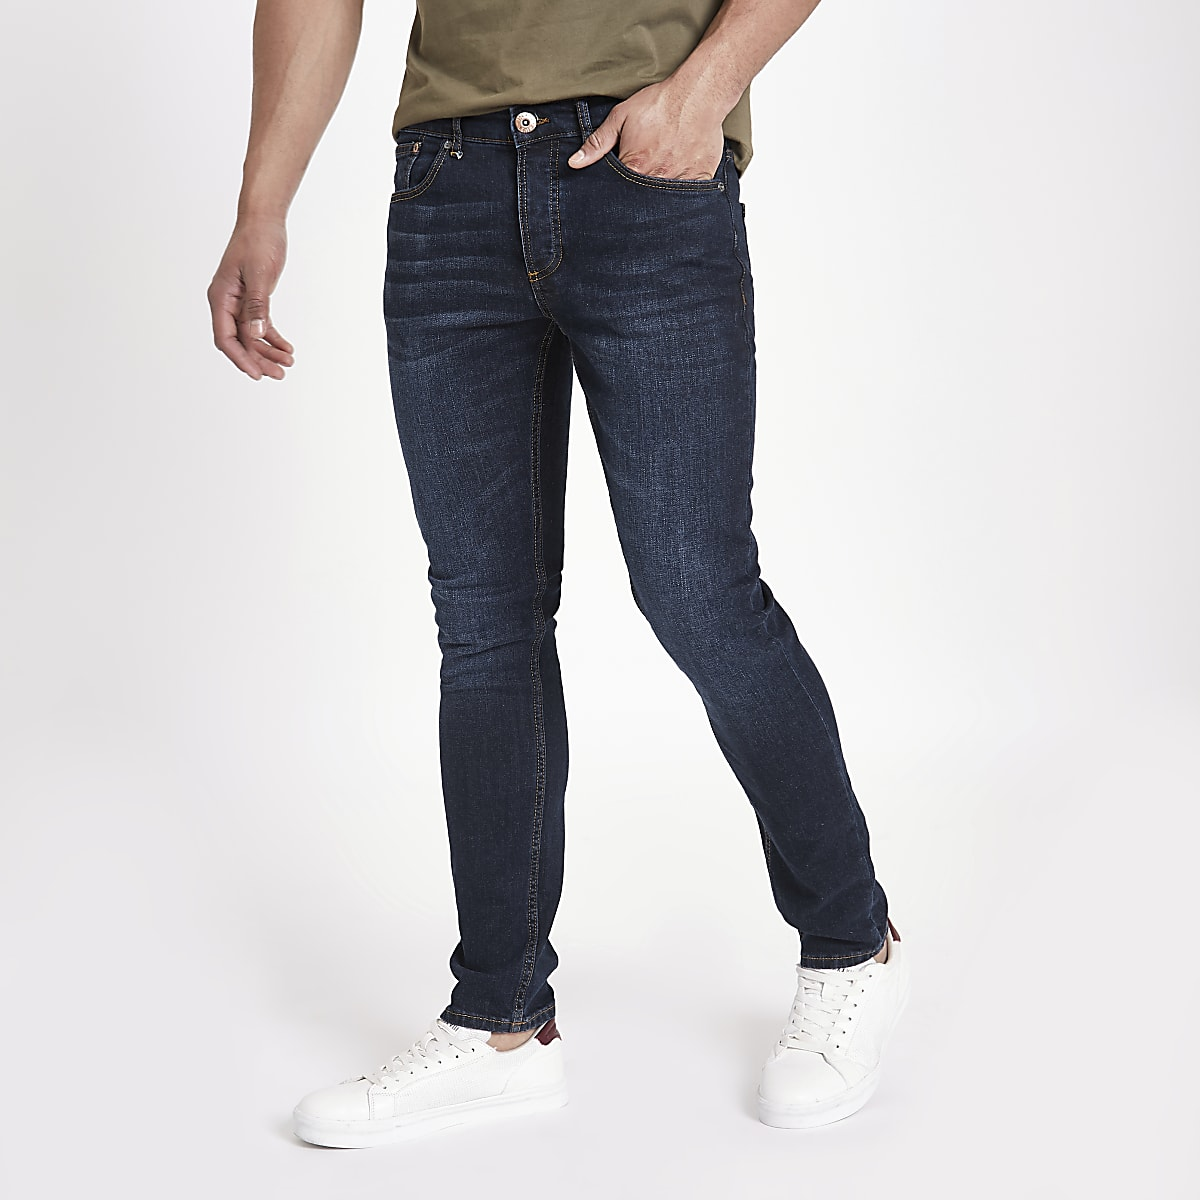 a6c1ae5d3 Navy Blue Jeans Men - The Best Style Jeans